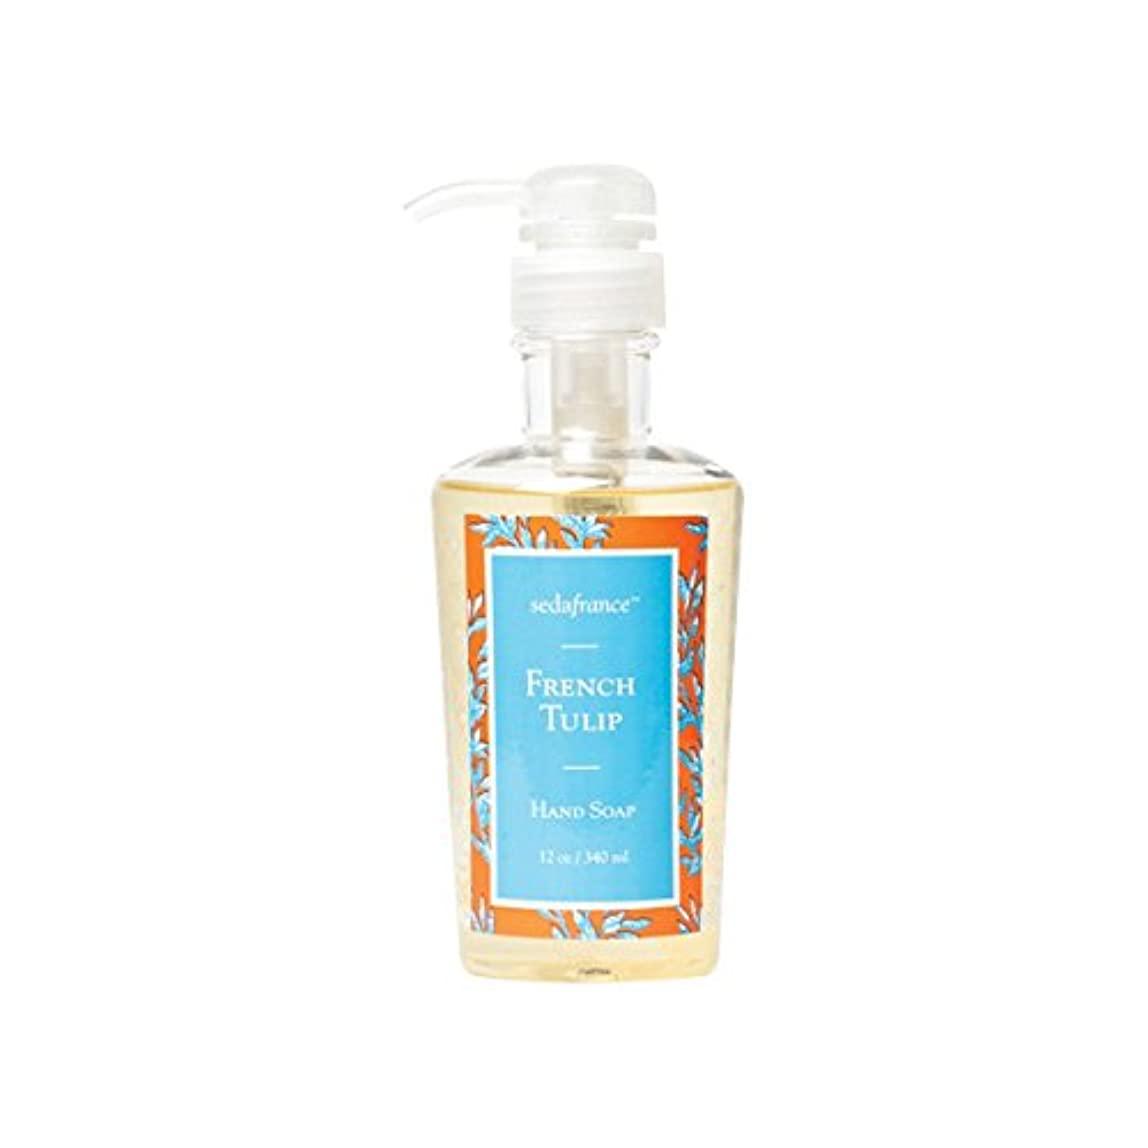 Classic Toile French Tulip Liquid Hand Soap by Seda France